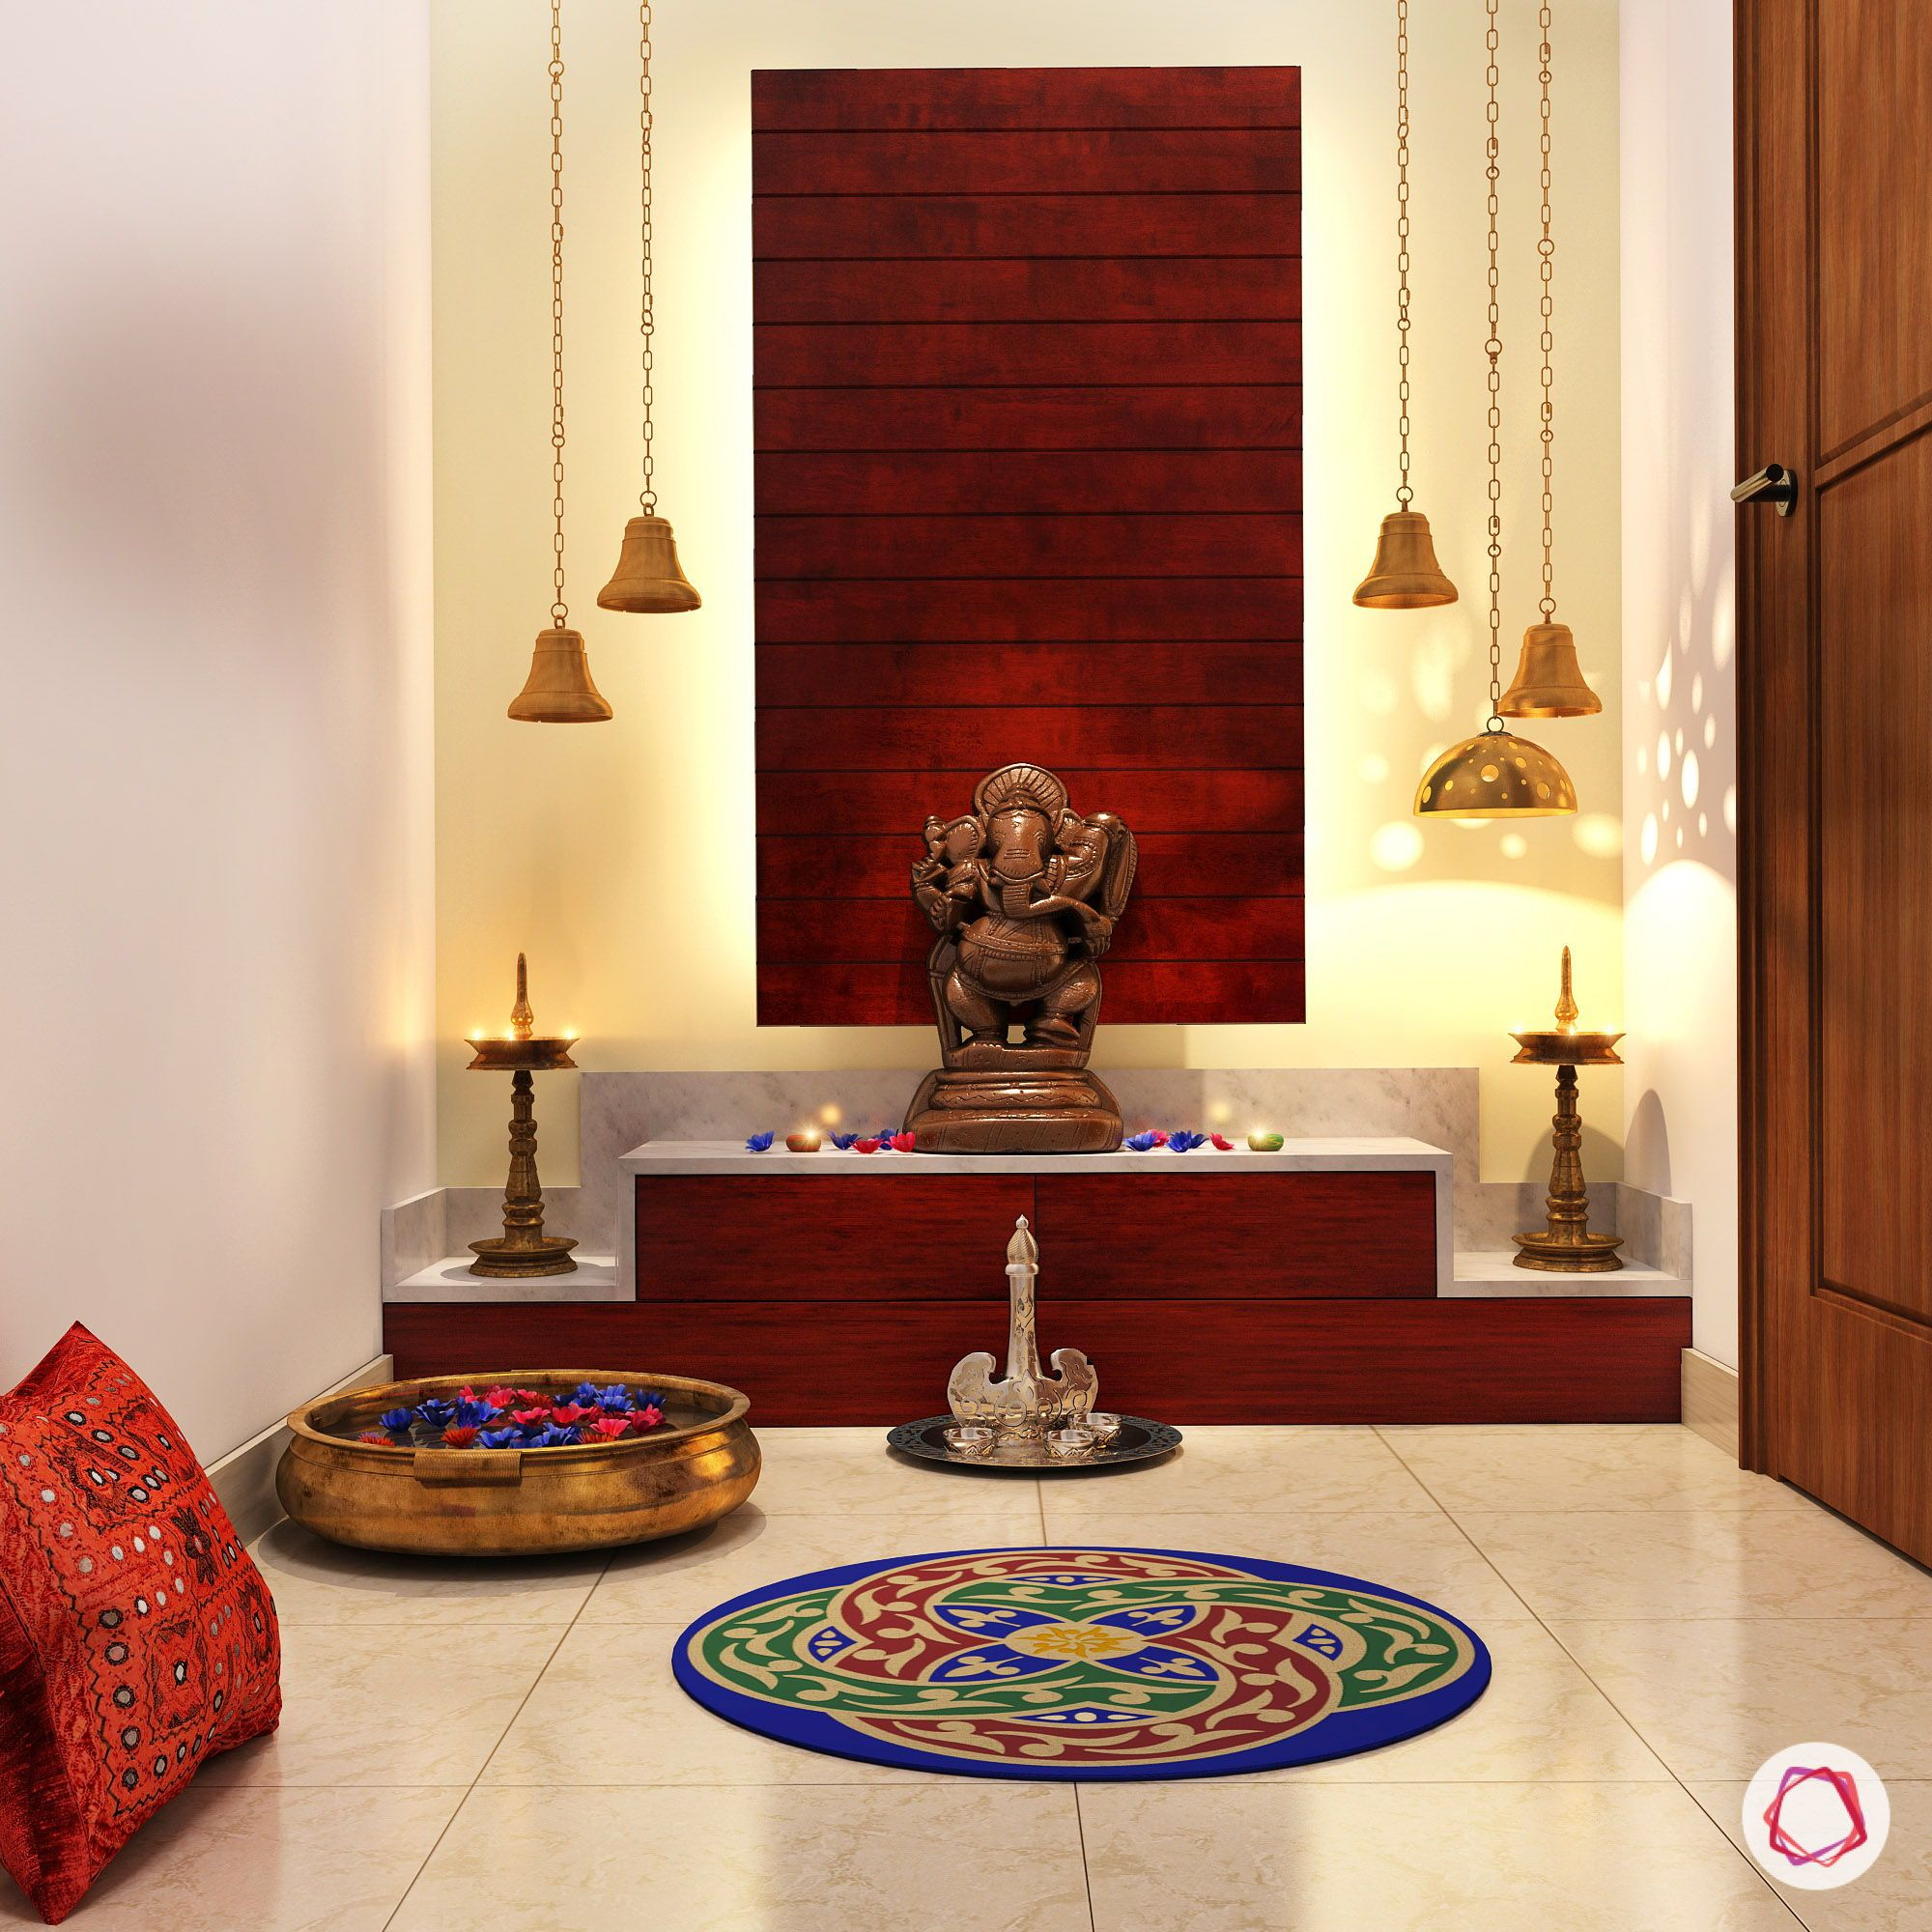 11 Small Pooja Room Designs With Dimensions For Your Home Room Door Design Pooja Room Door Design Pooja Room Design